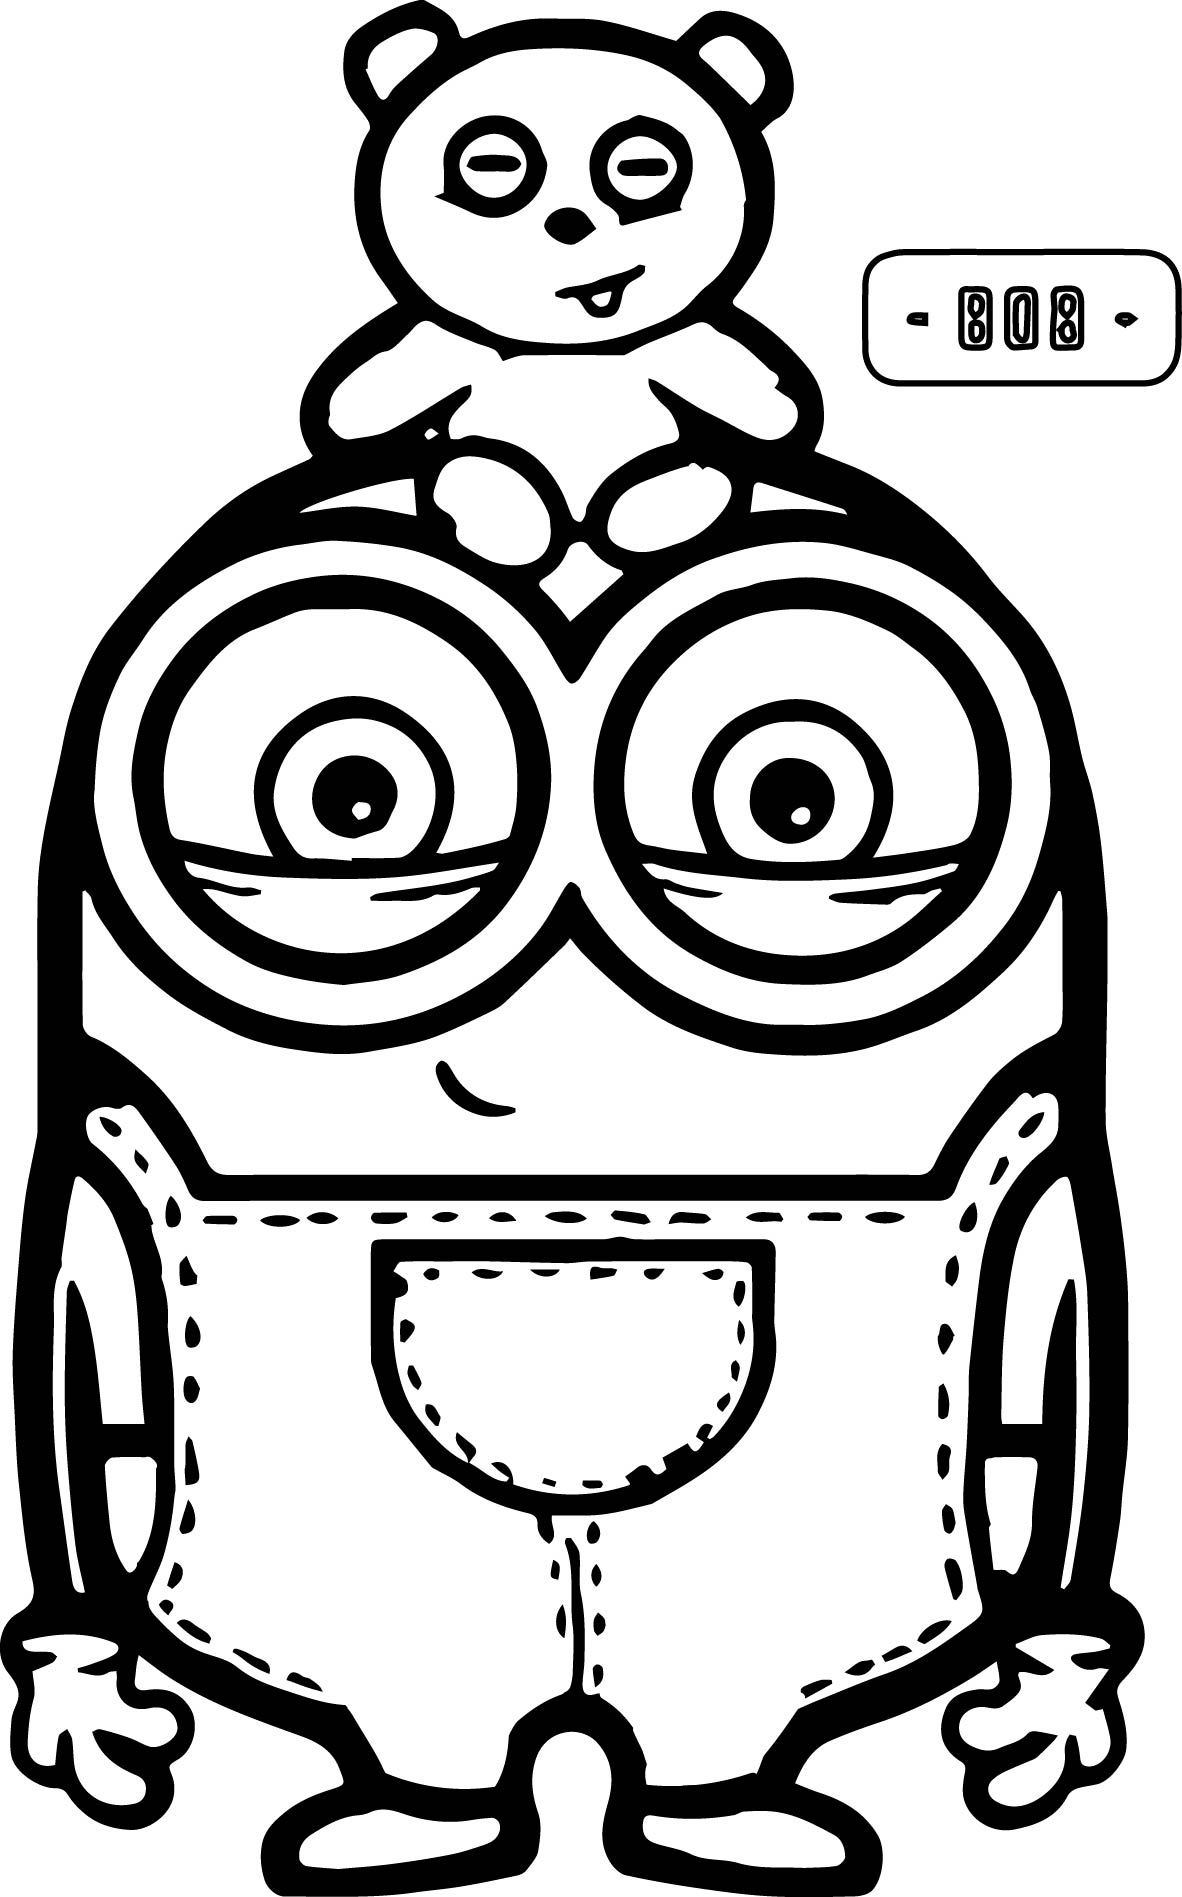 Ausmalbilder Minions Baby : Minions Drawing Games At Getdrawings Com Free For Personal Use